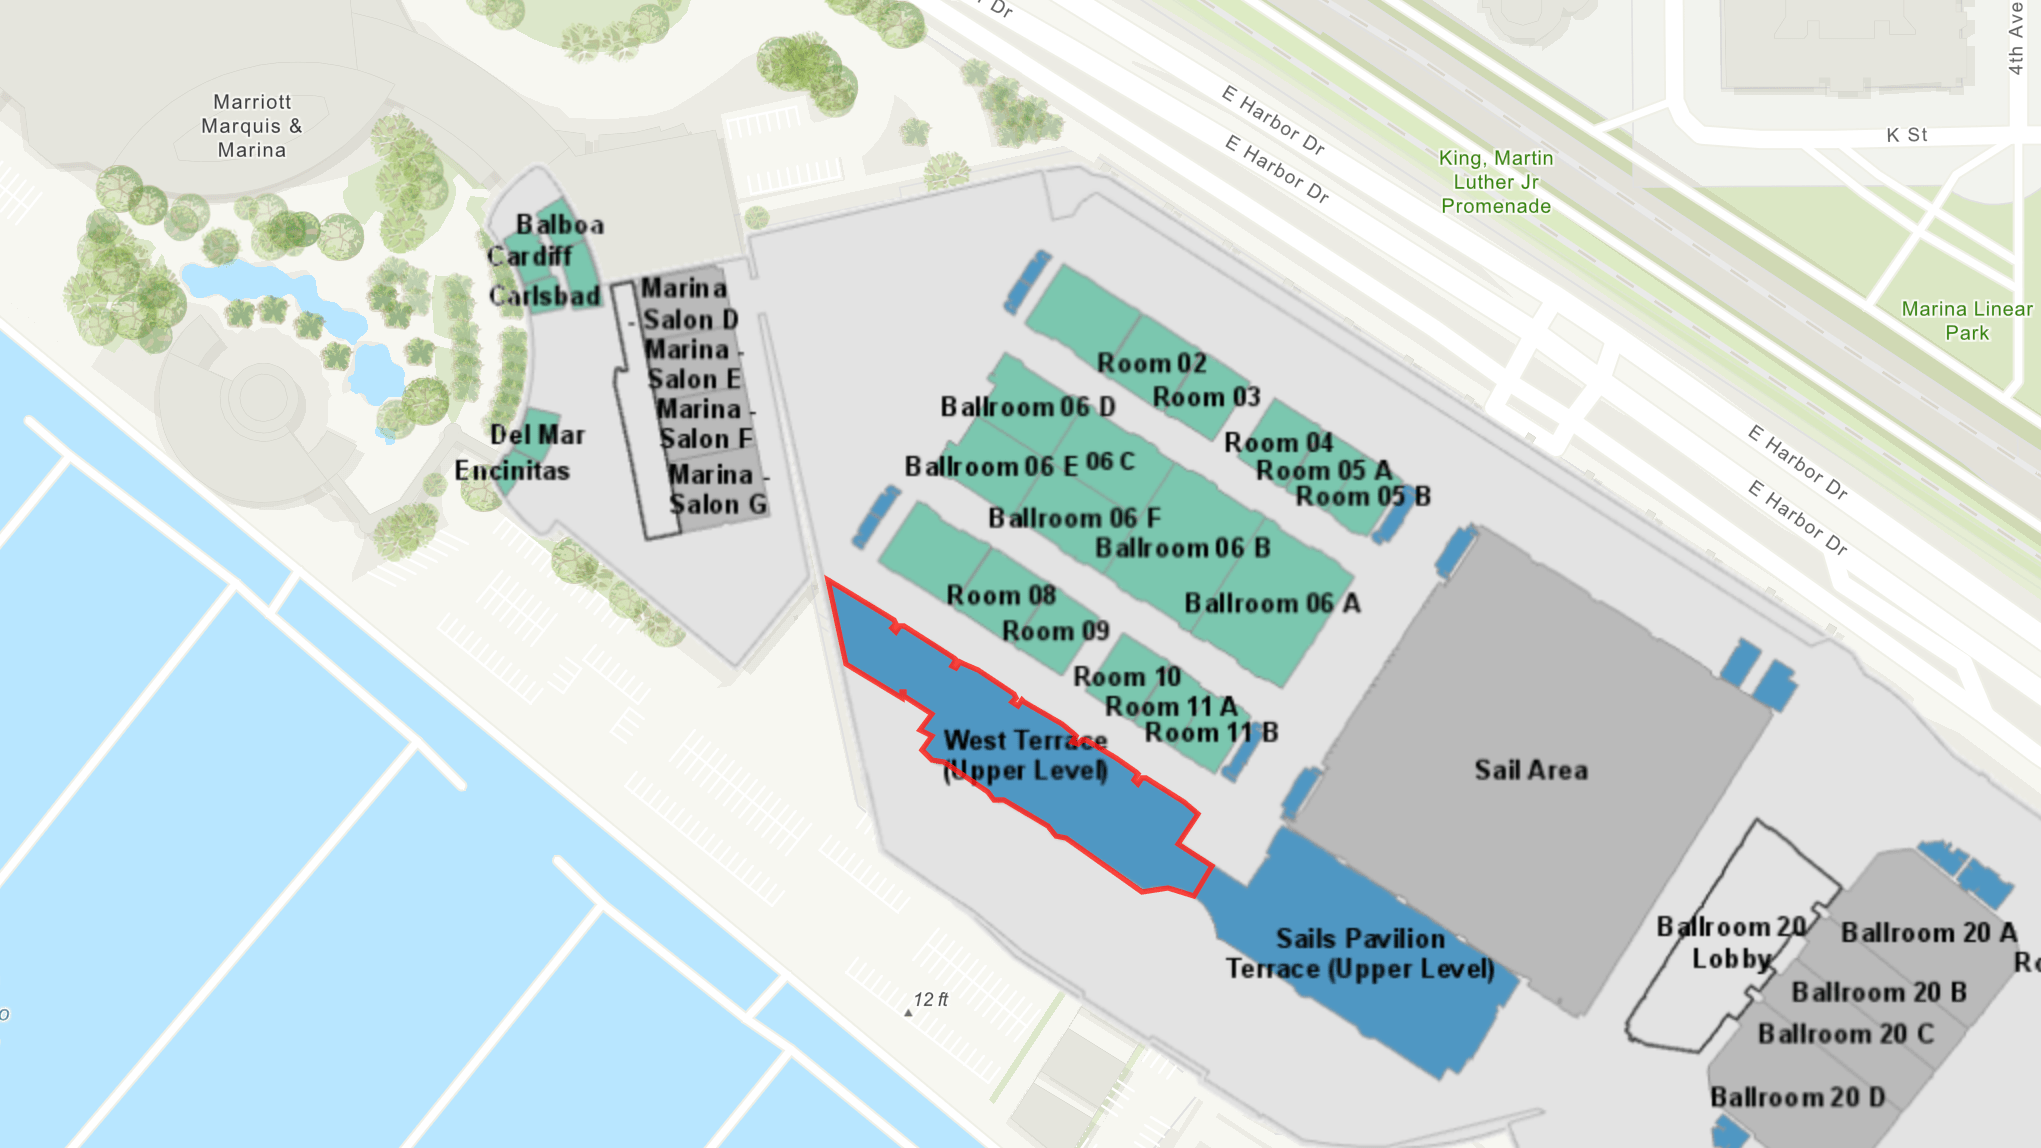 2019 Esri User Conference Socials We Recommend from Eos positioning Systems, a silver sponsor for the 2019 uc; shown here is a map of the SAN DIEGO CONVENTION CENTER WEST TERRACE